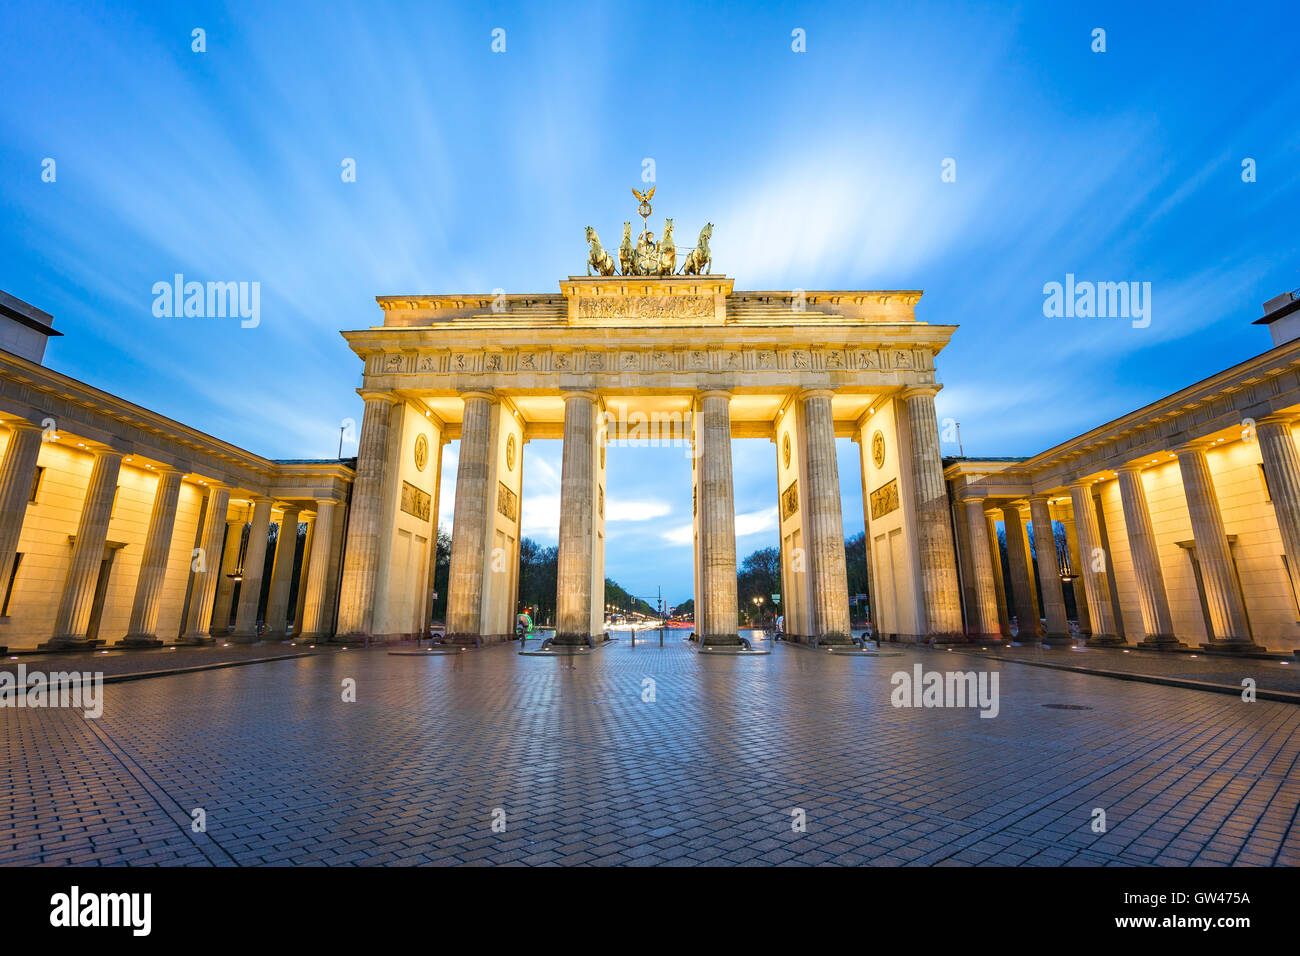 The long exposure view of Brandenburger Tor in Berlin, Germany. - Stock Image